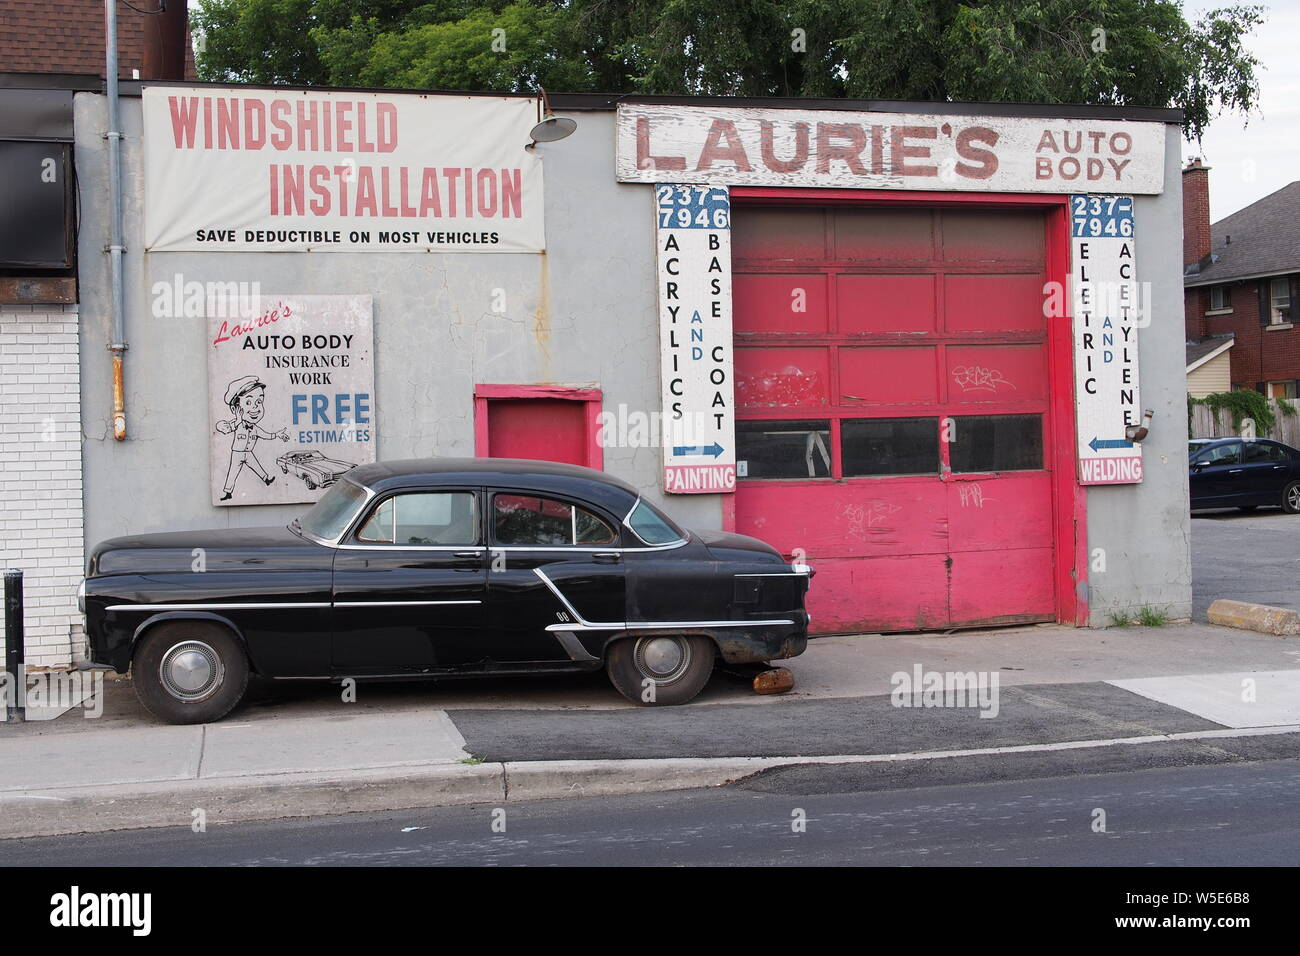 Vintage American Car Parked In Front Of Laurie S Auto Body Bronson Street Ottawa Ontario Canada Stock Photo Alamy